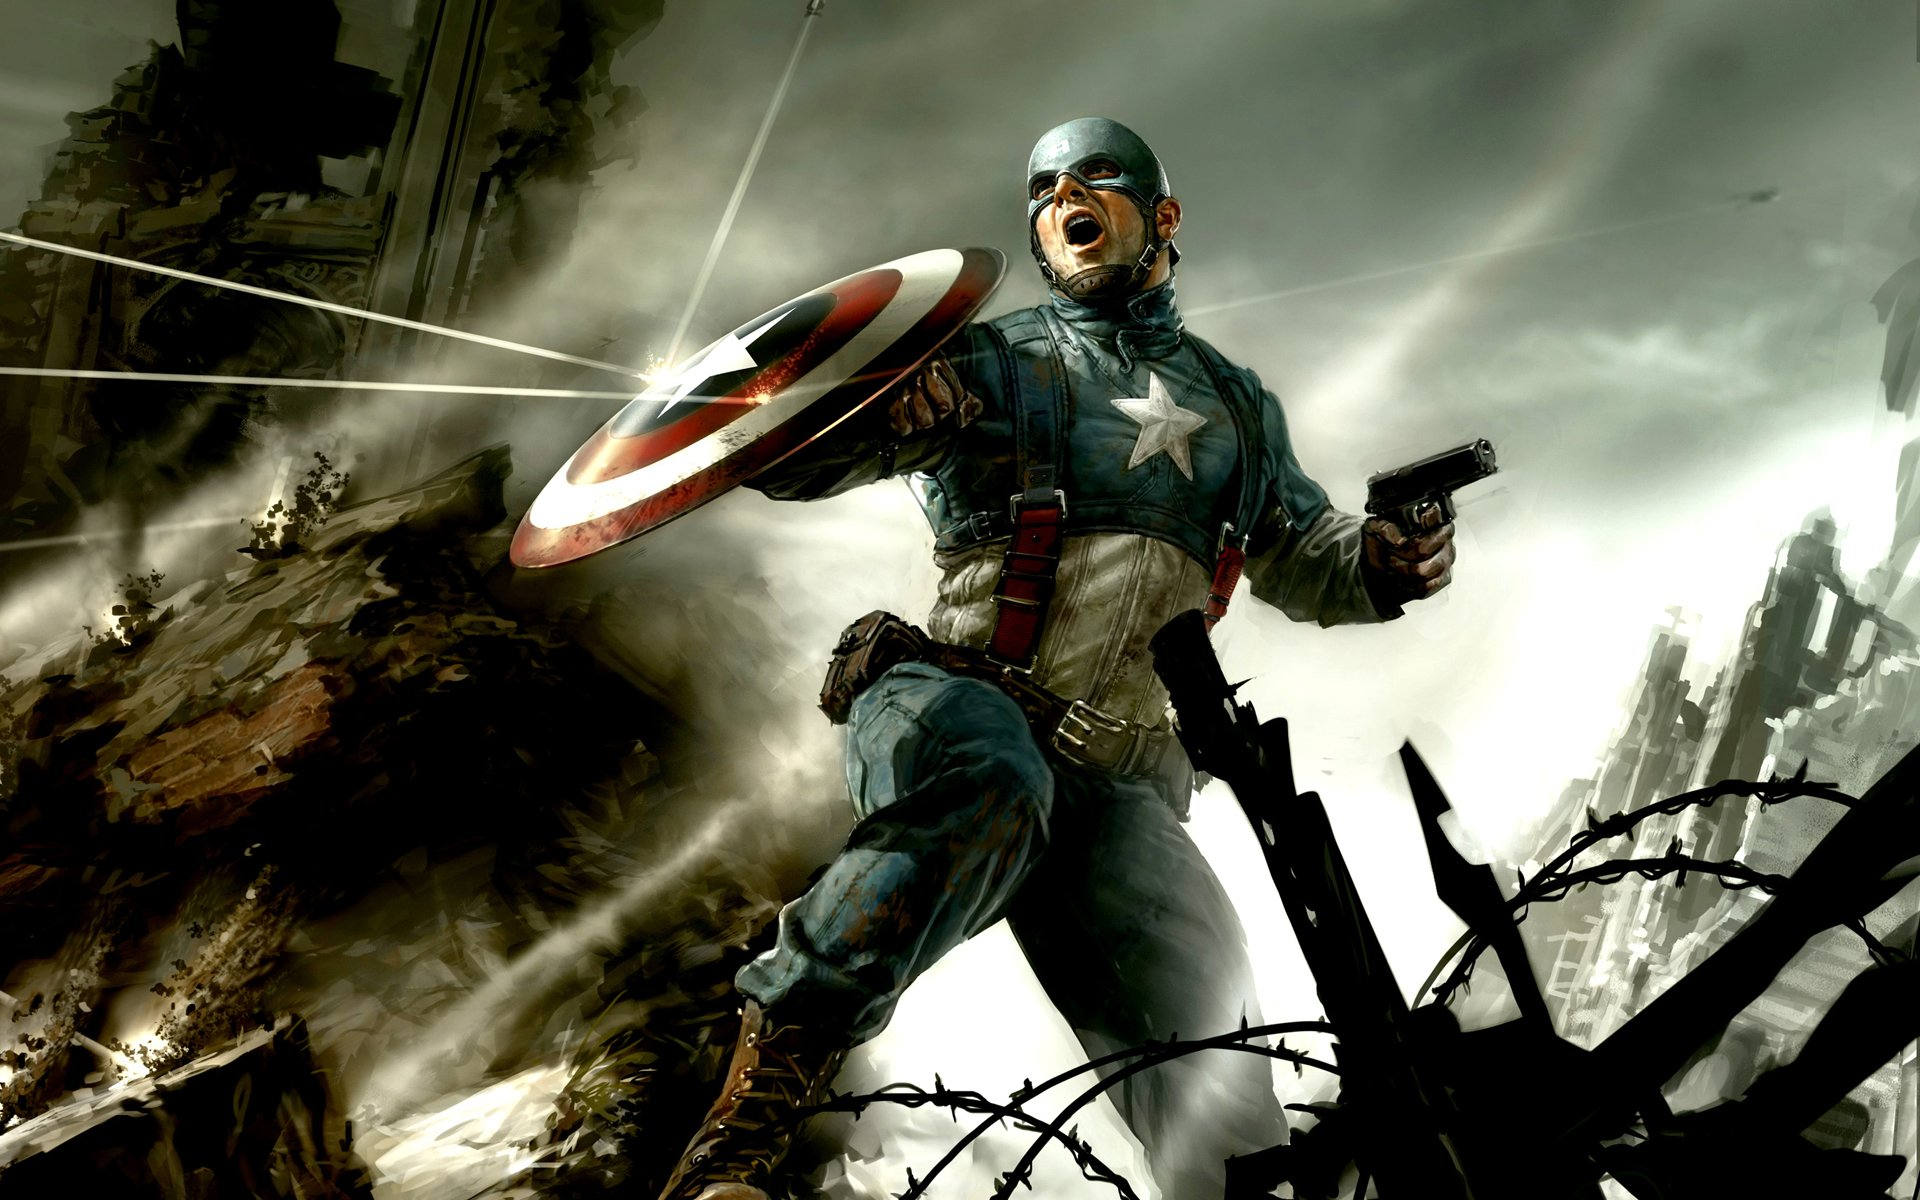 Captain America CG Wallpapers HD Wallpapers 1920x1200